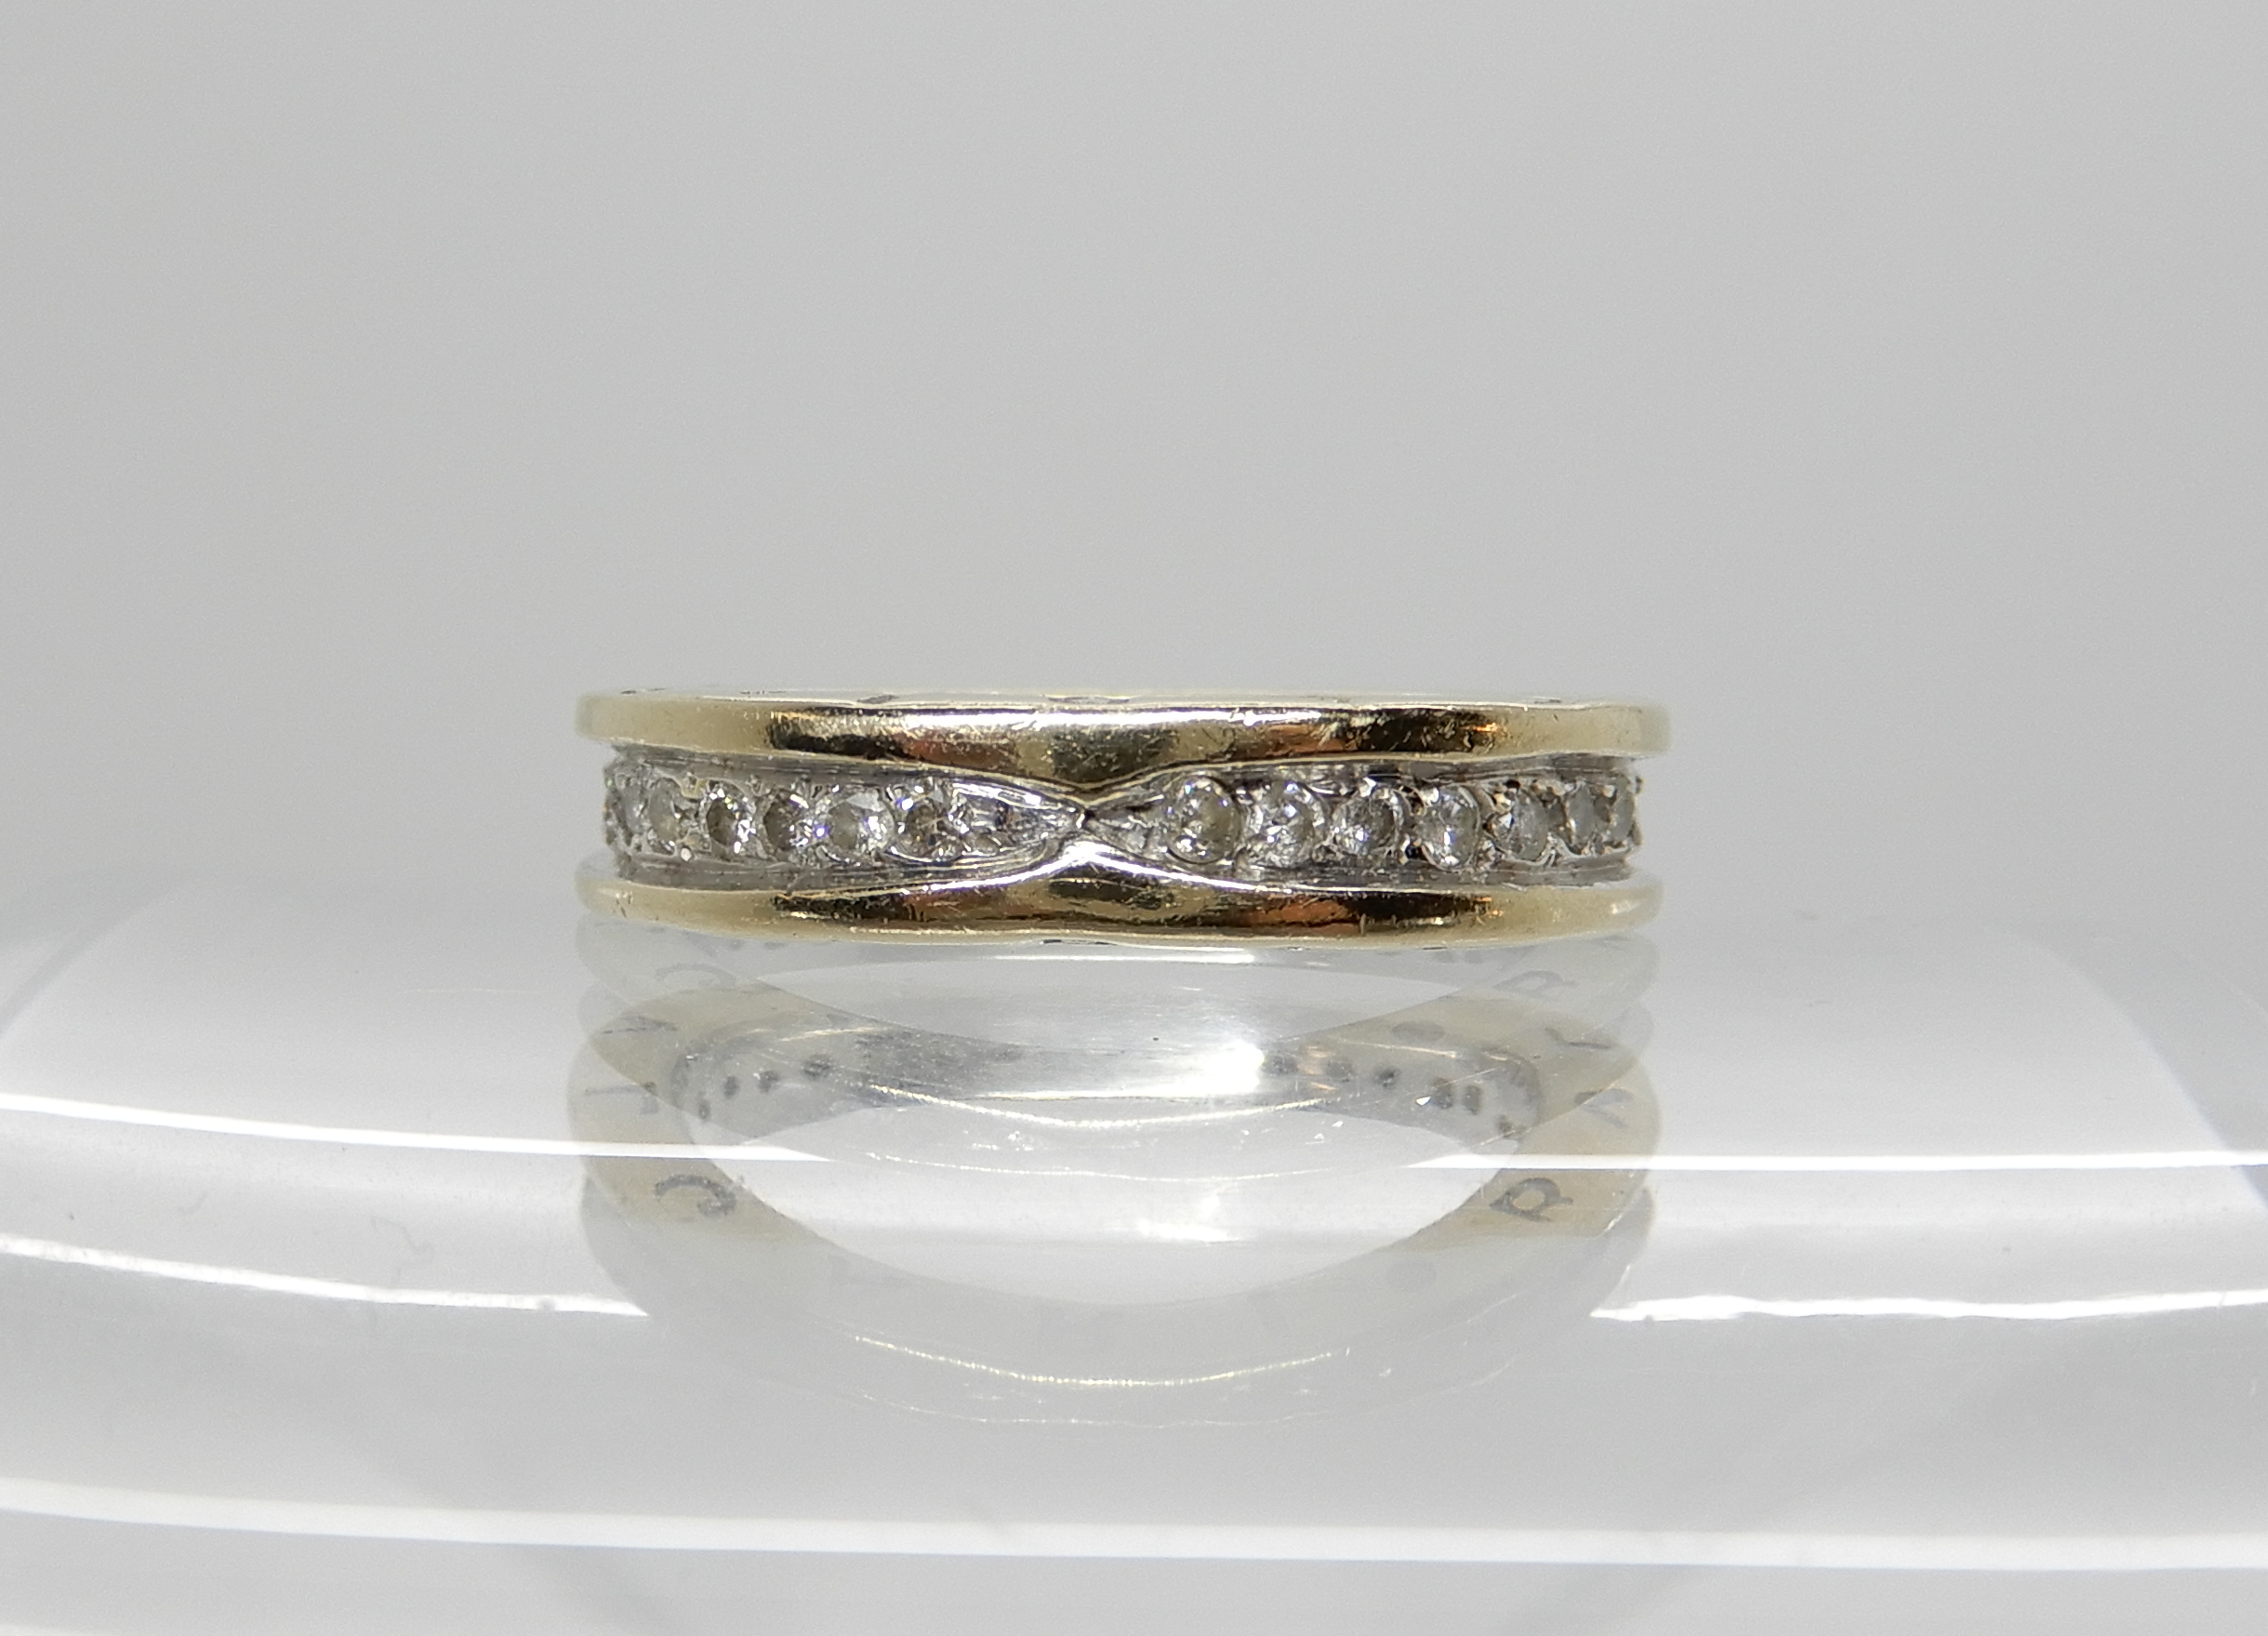 Lot 45 - An 18ct white gold diamond ring Stamped Bulgari, set with estimated approx 0.48cts of brilliant